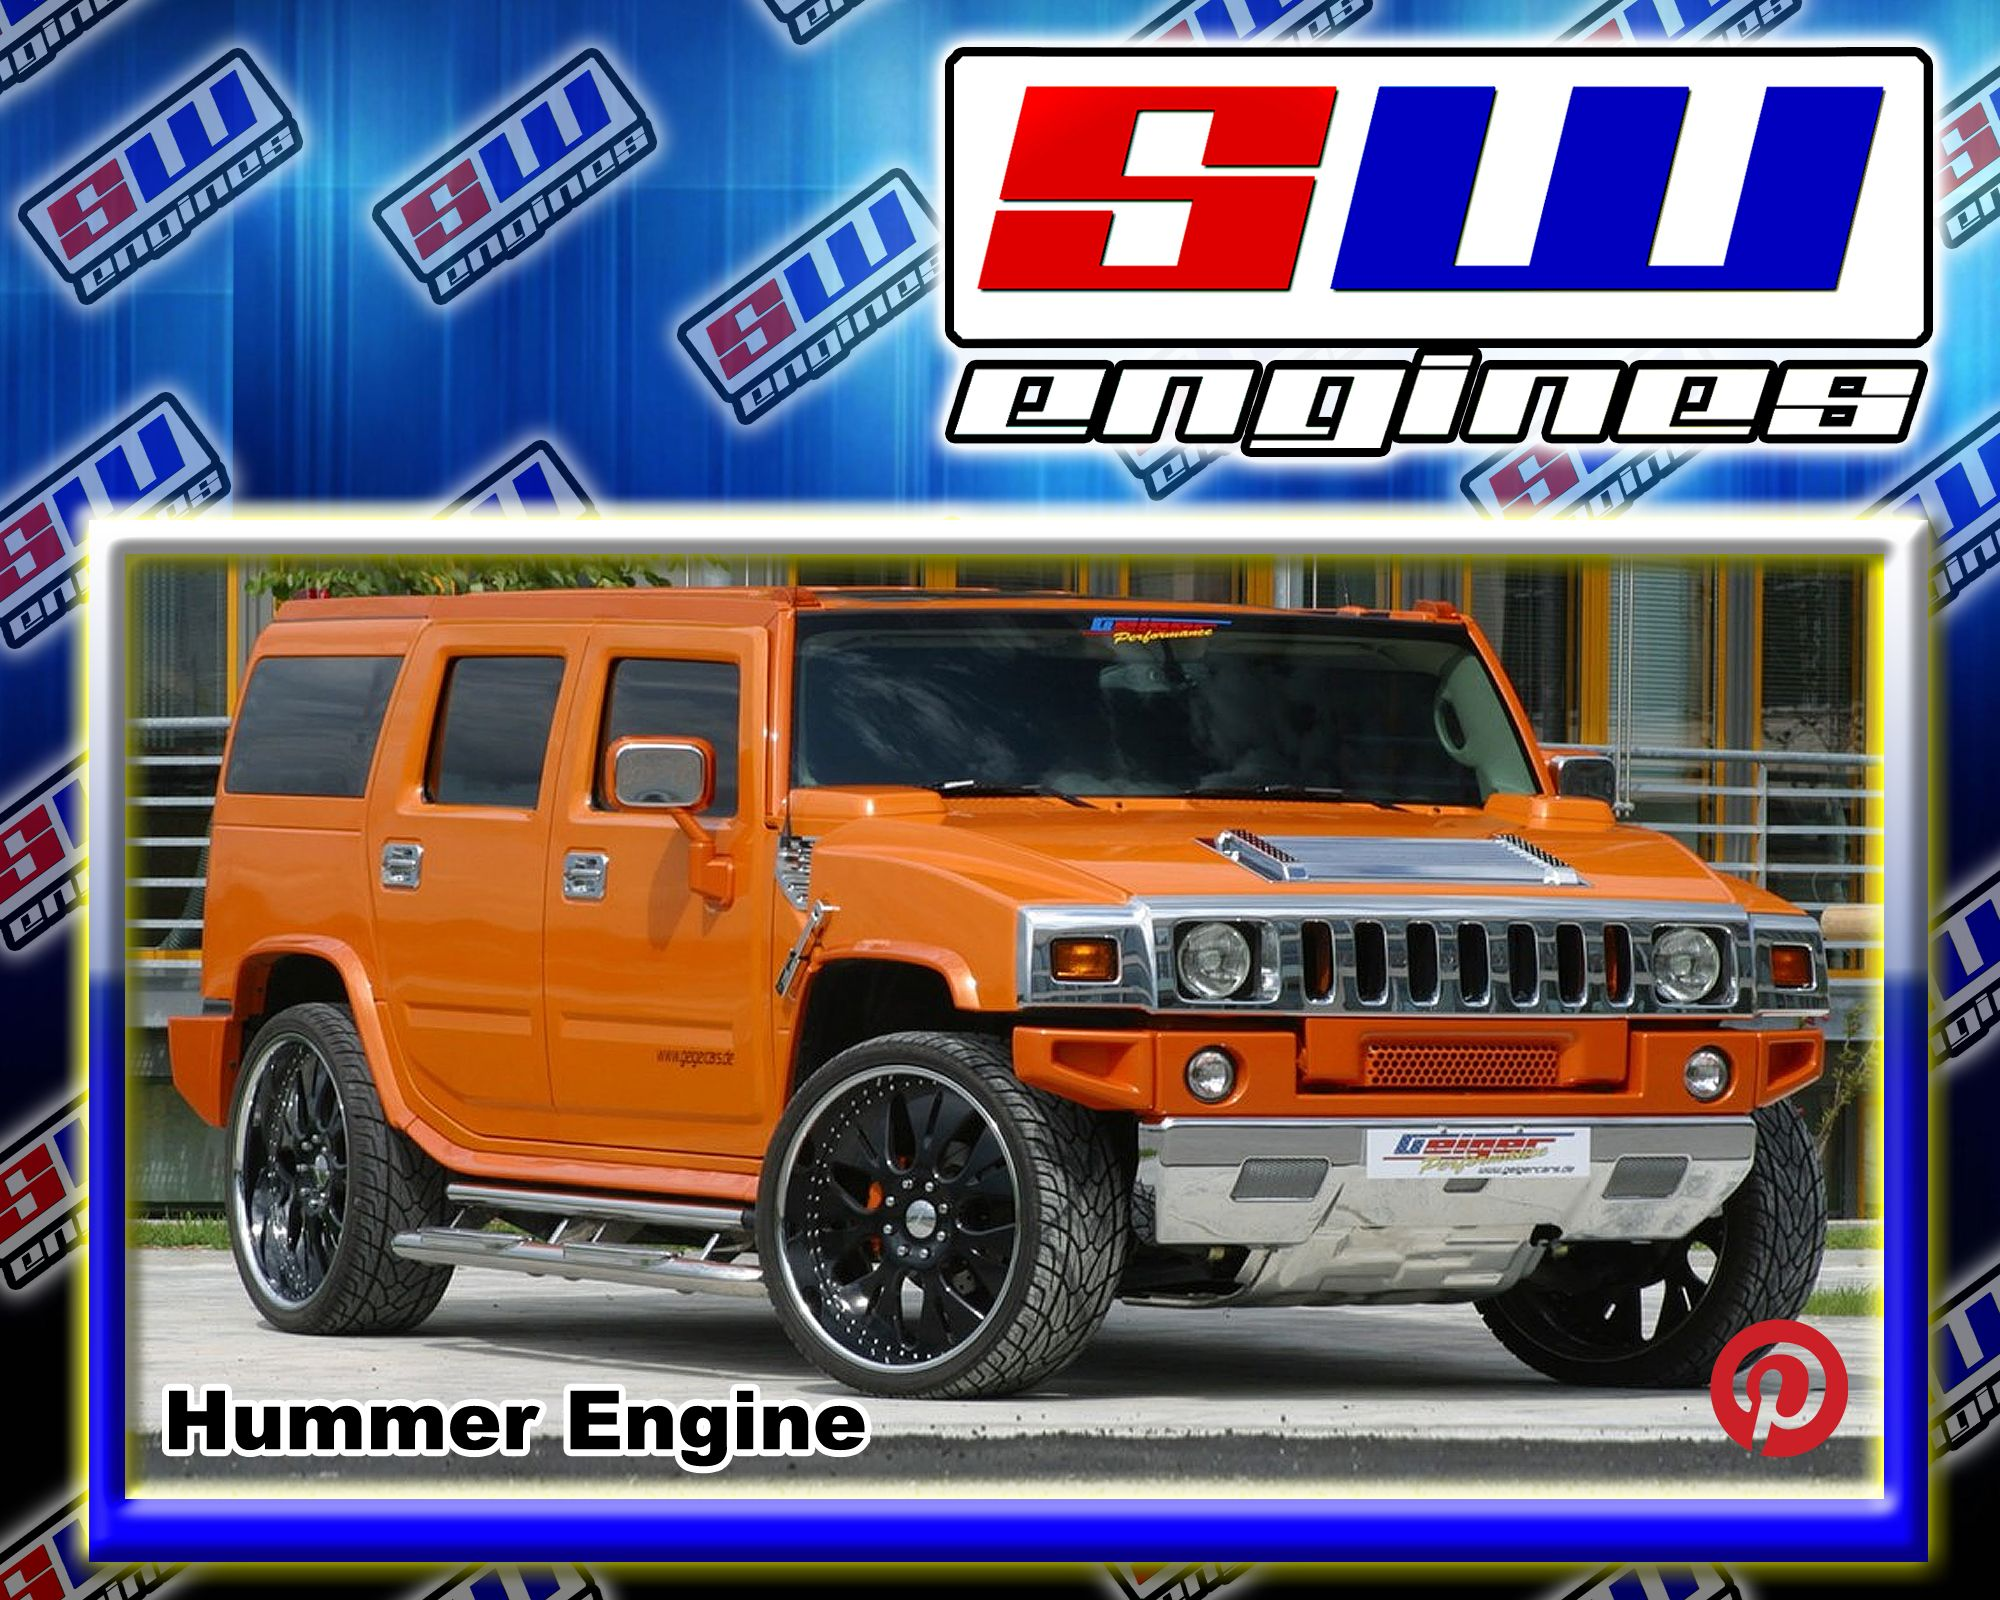 SWEngines Check out the different models of Hummer car